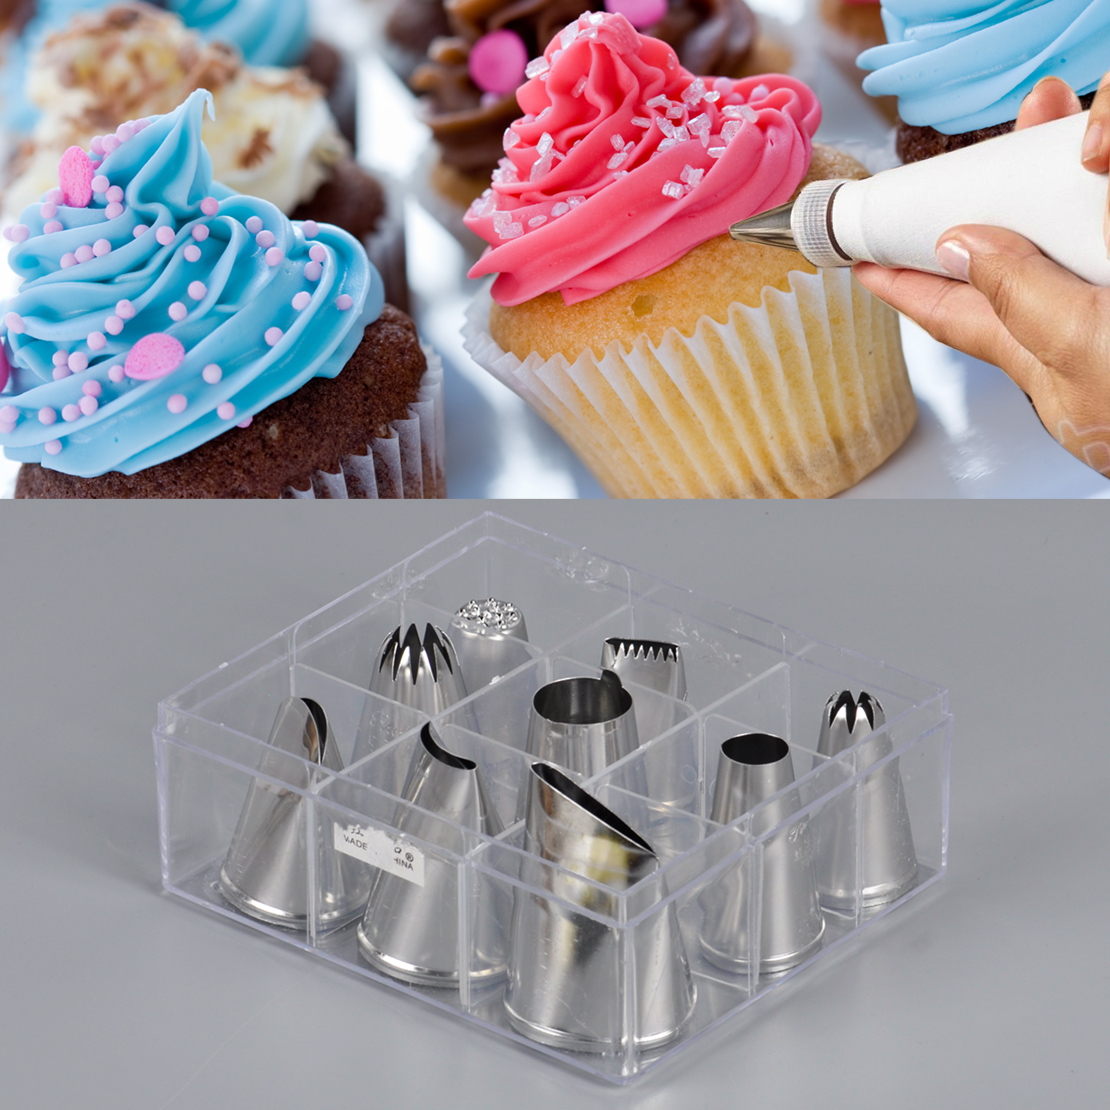 Cake Decorating Latest Techniques : 9PCS DIY Icing Piping Nozzles Pastry Tips Cake Decorating ...